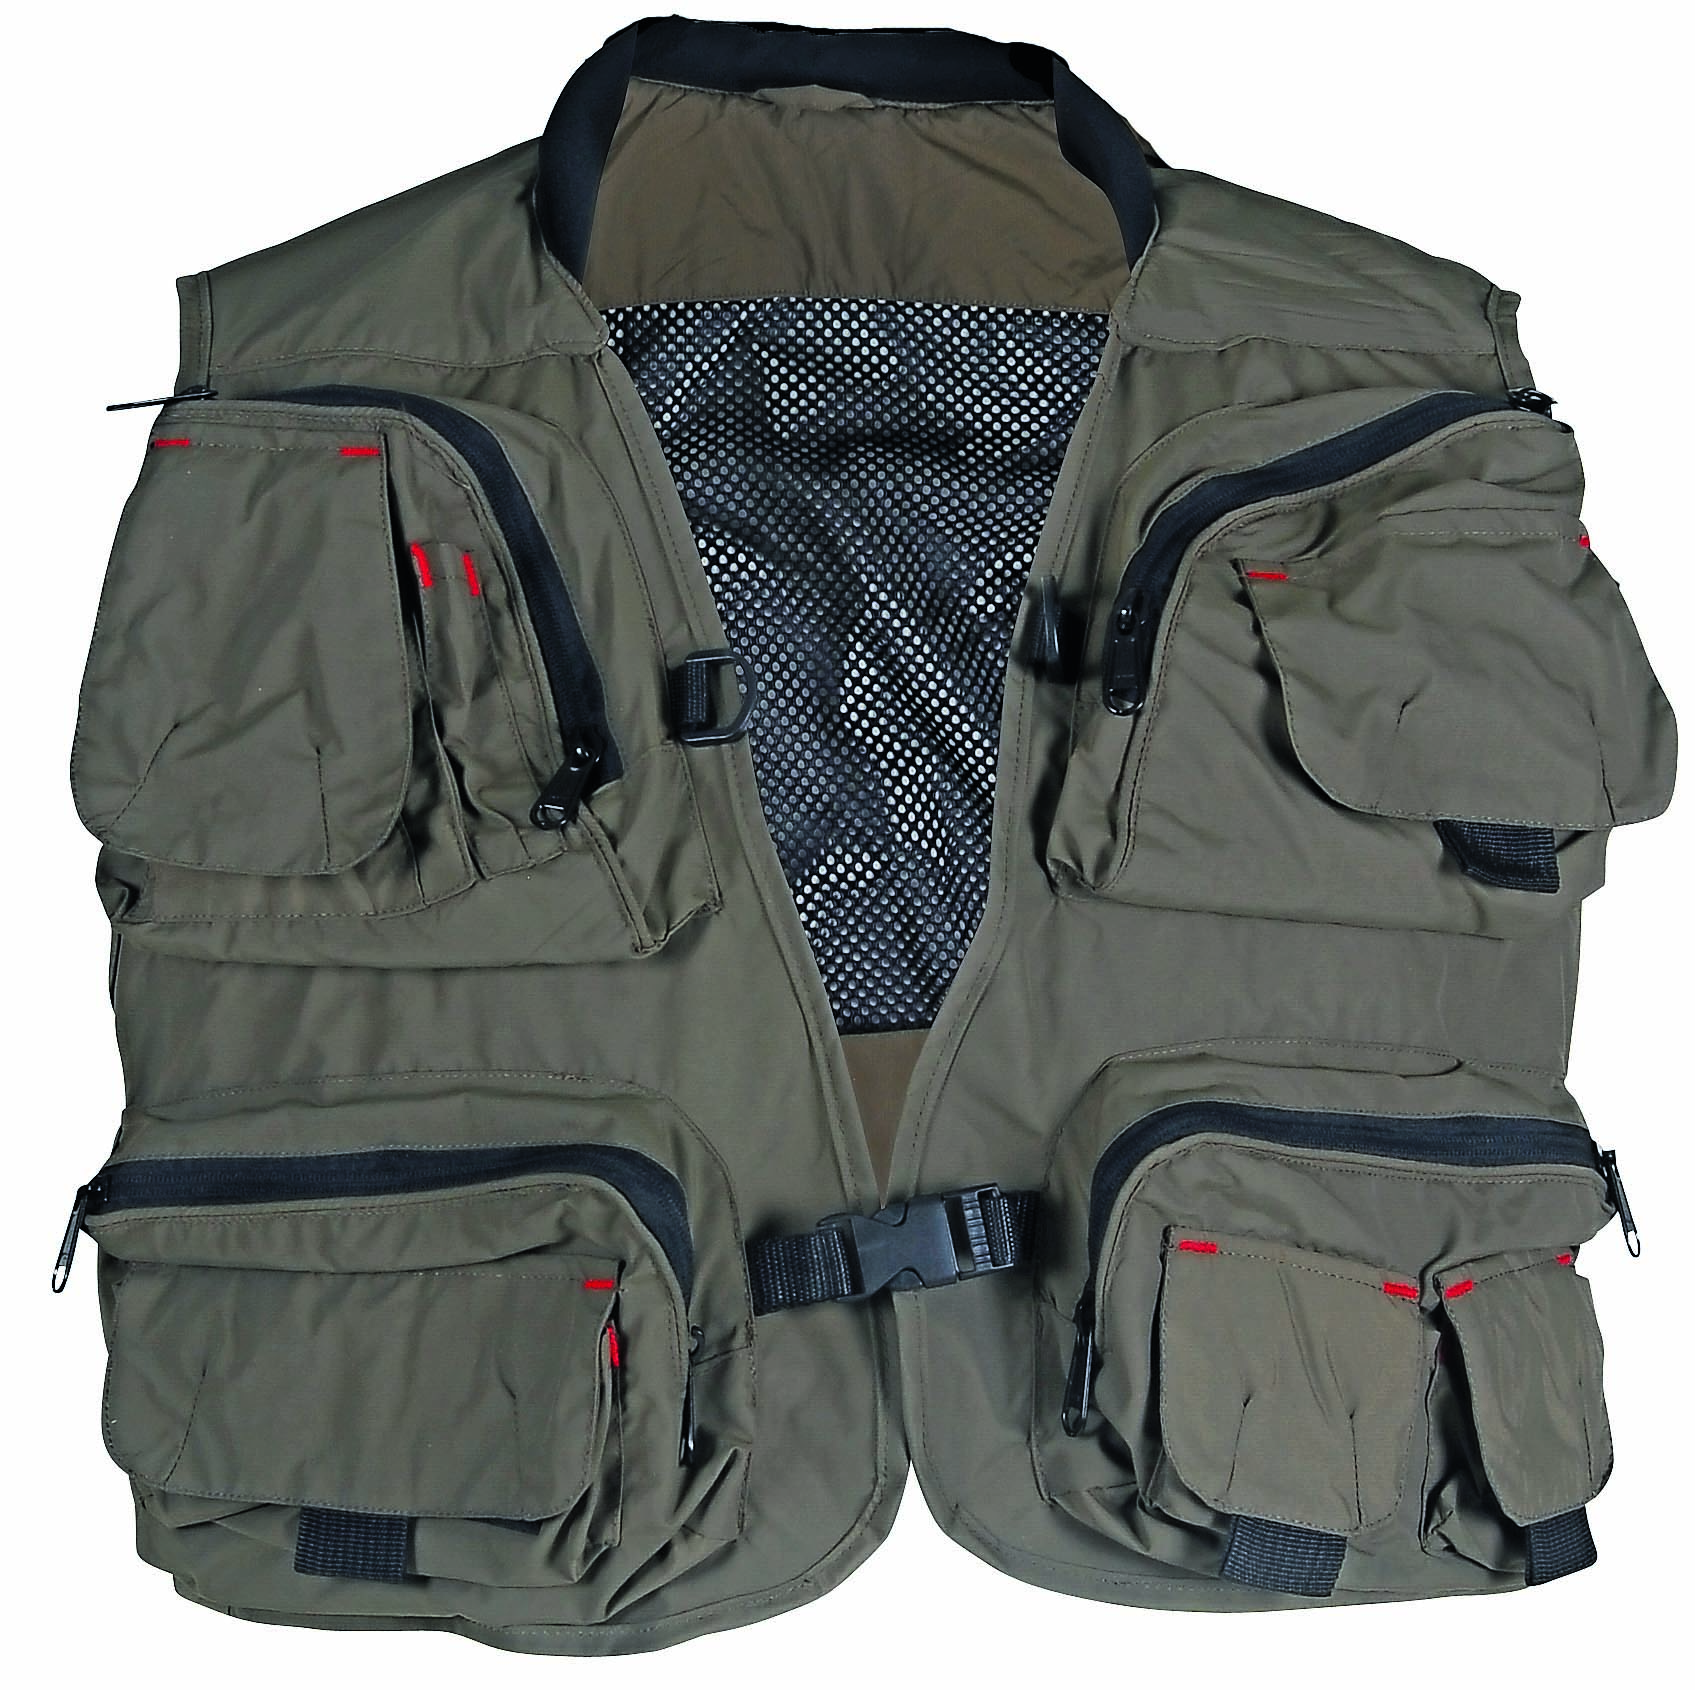 DAM HYDROFORCE G2 FLY VEST Fliegenweste Gr. M